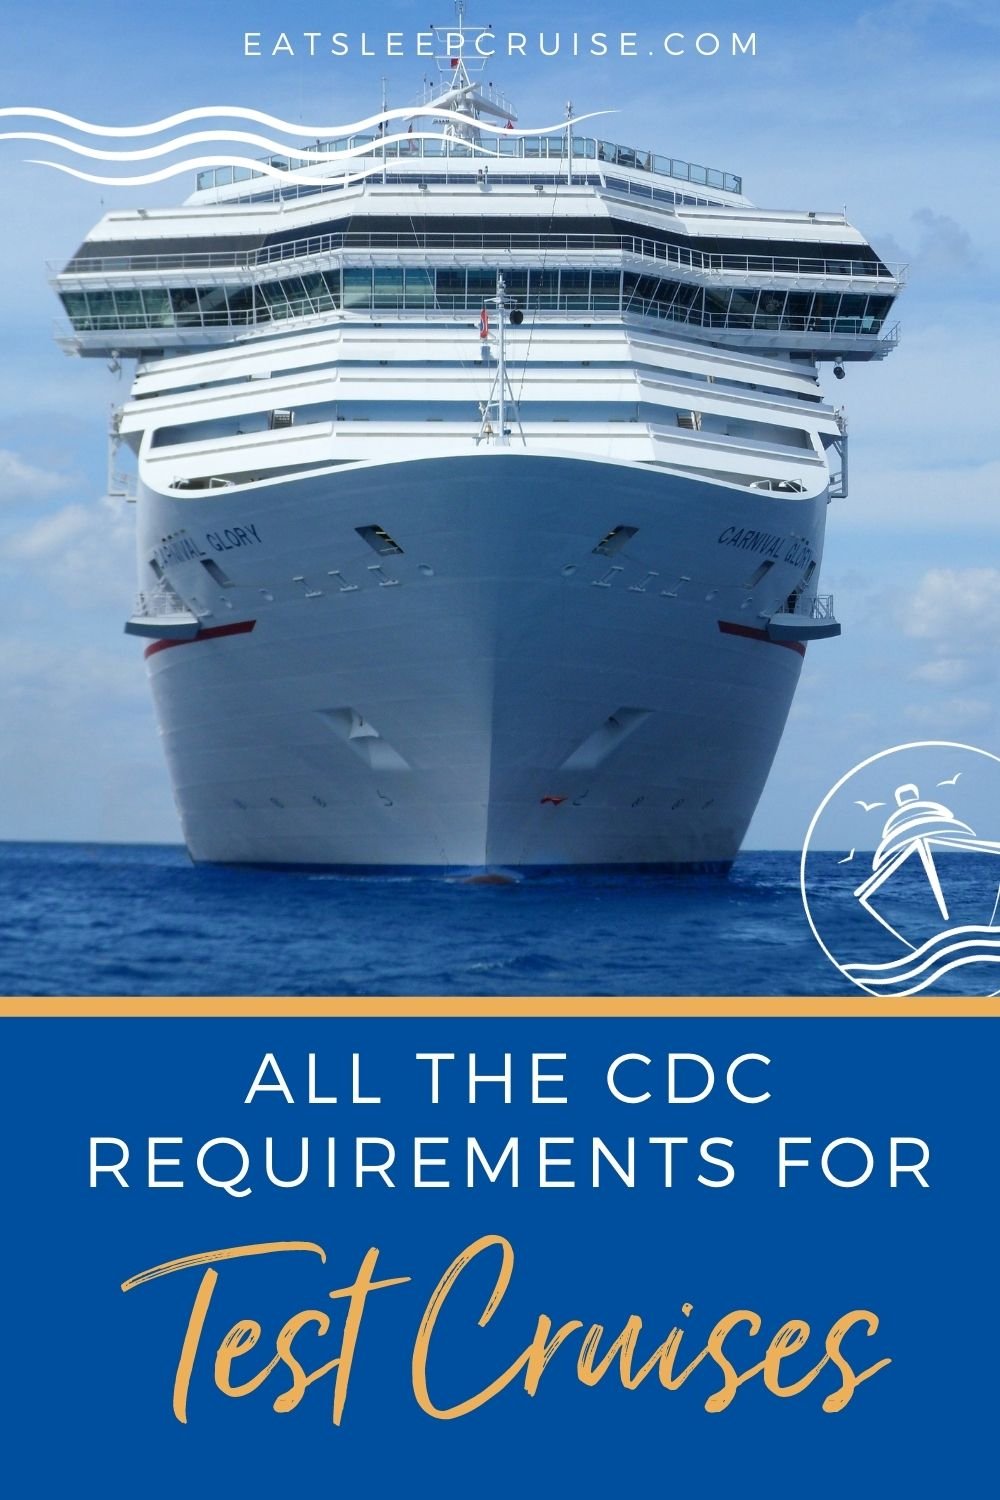 CDC Announces details of simulated voyages